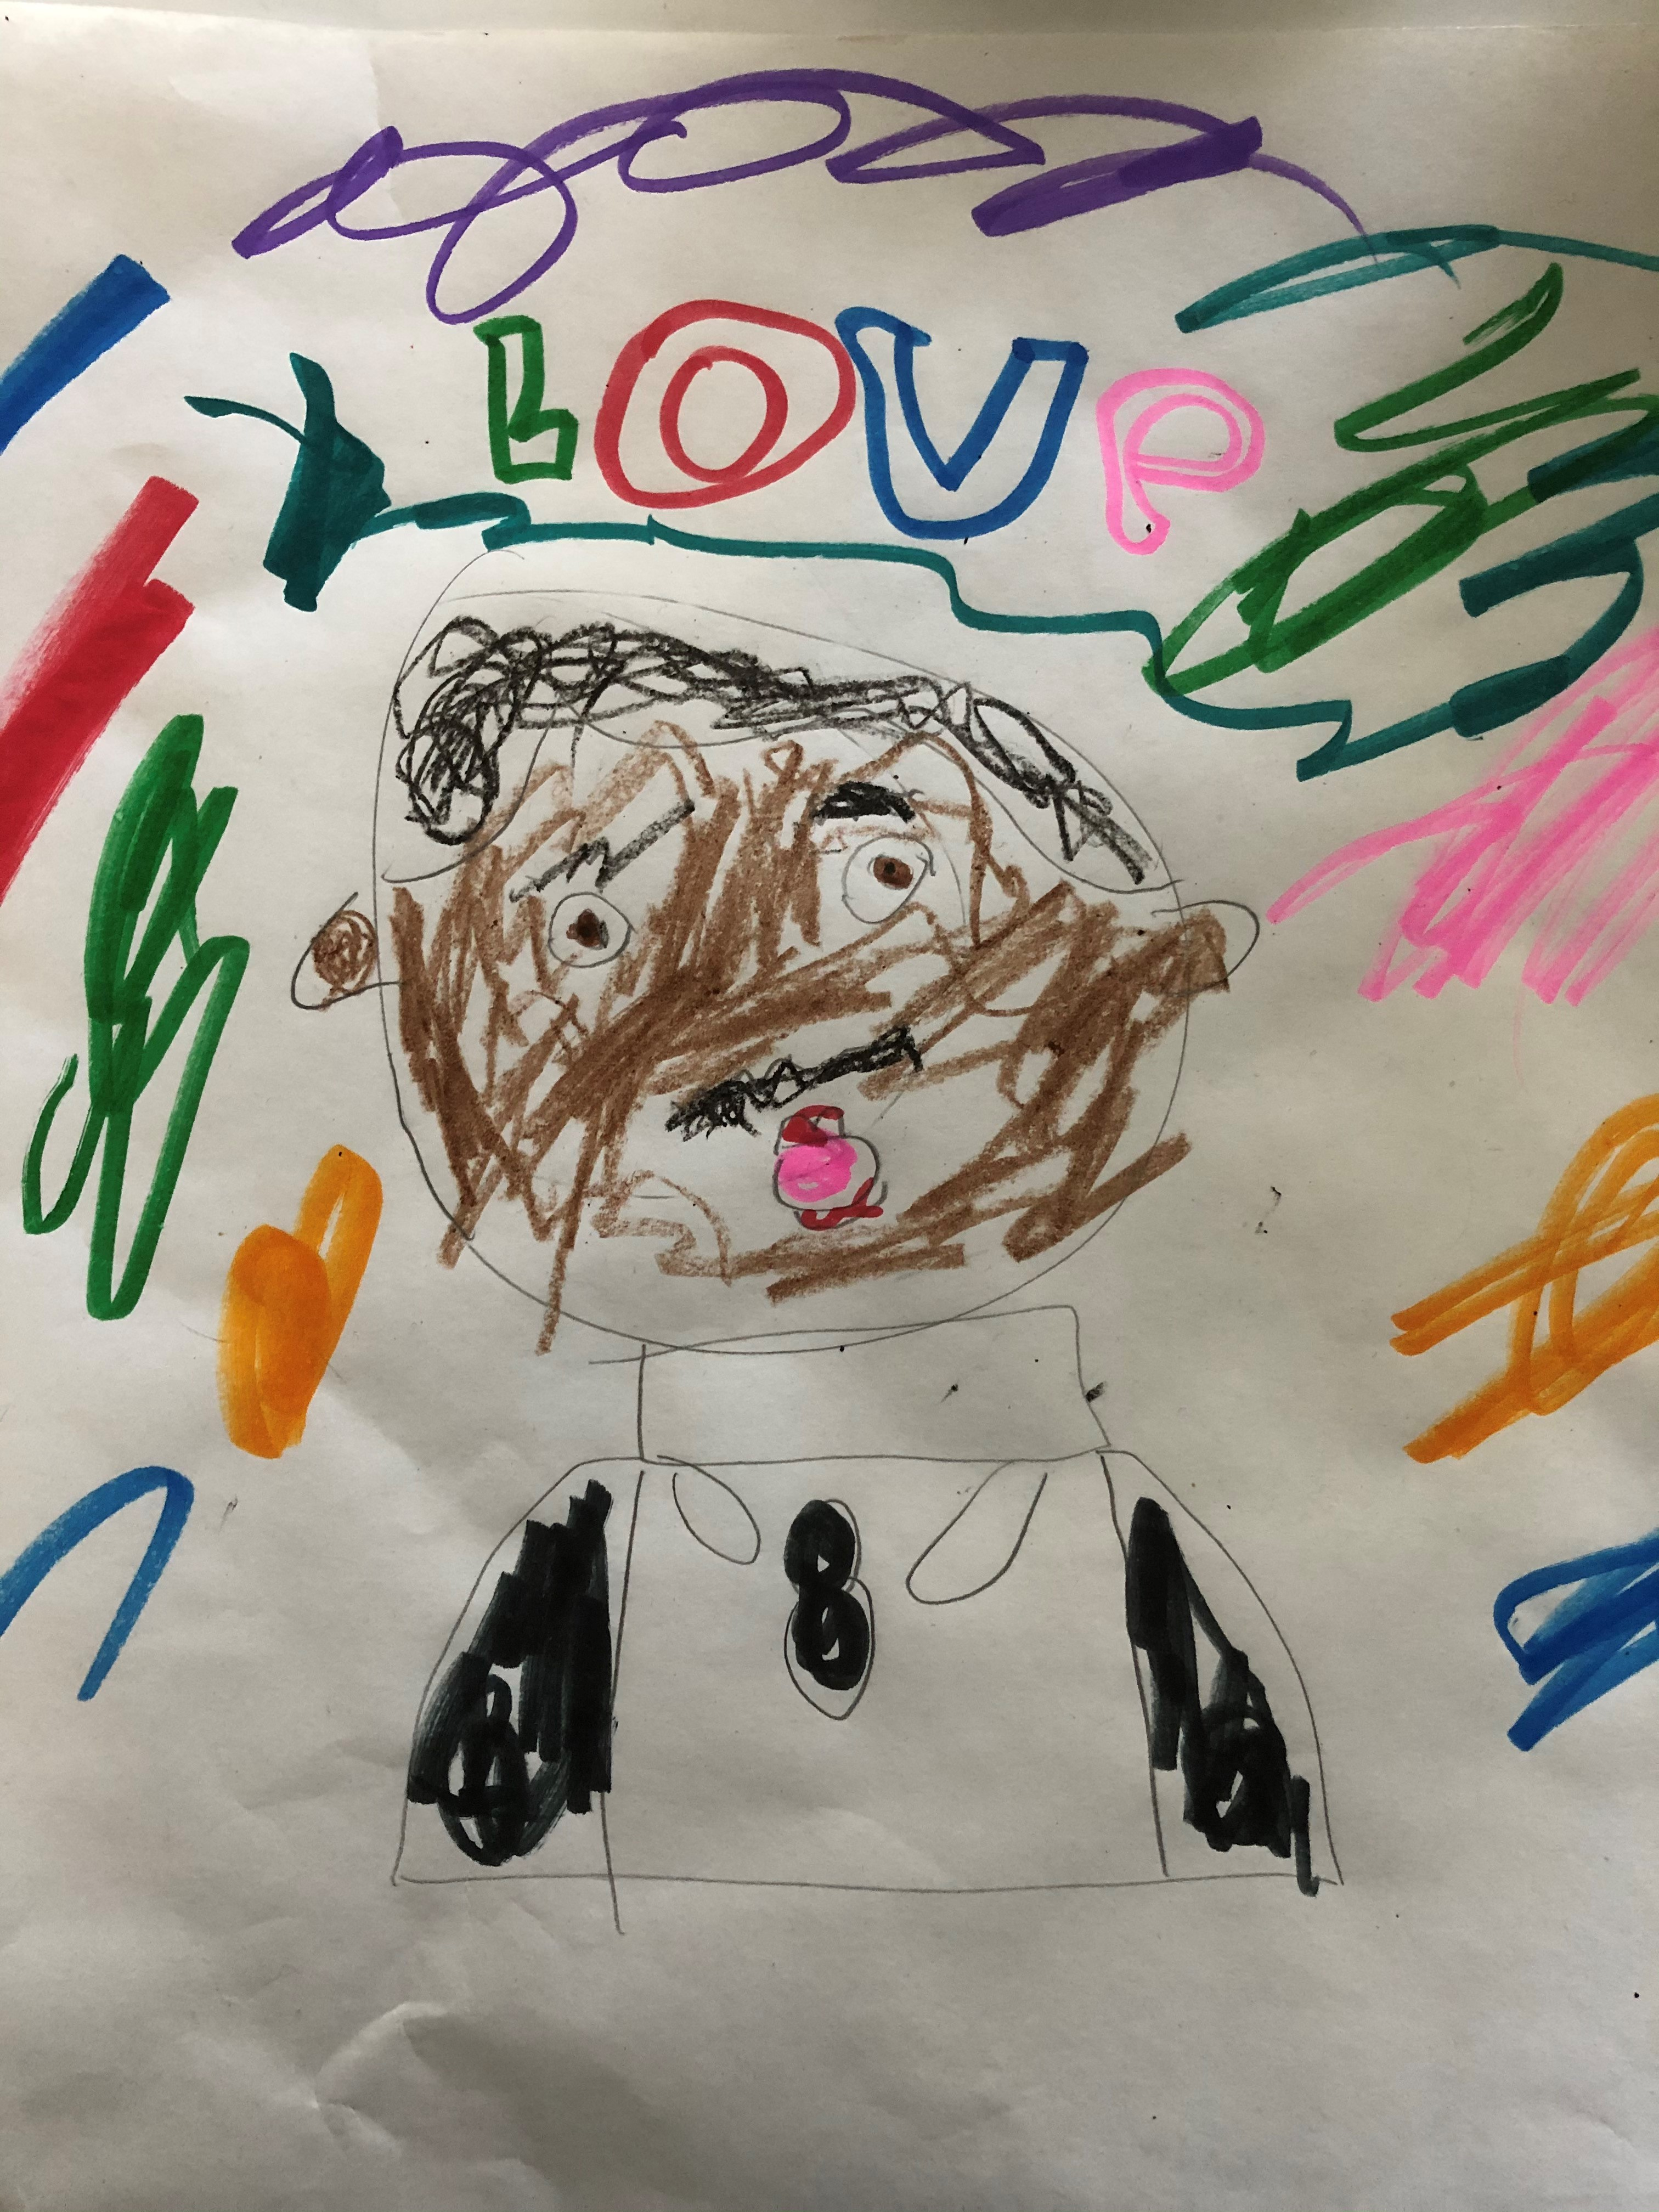 Child's Drawing of MLK with Love written above